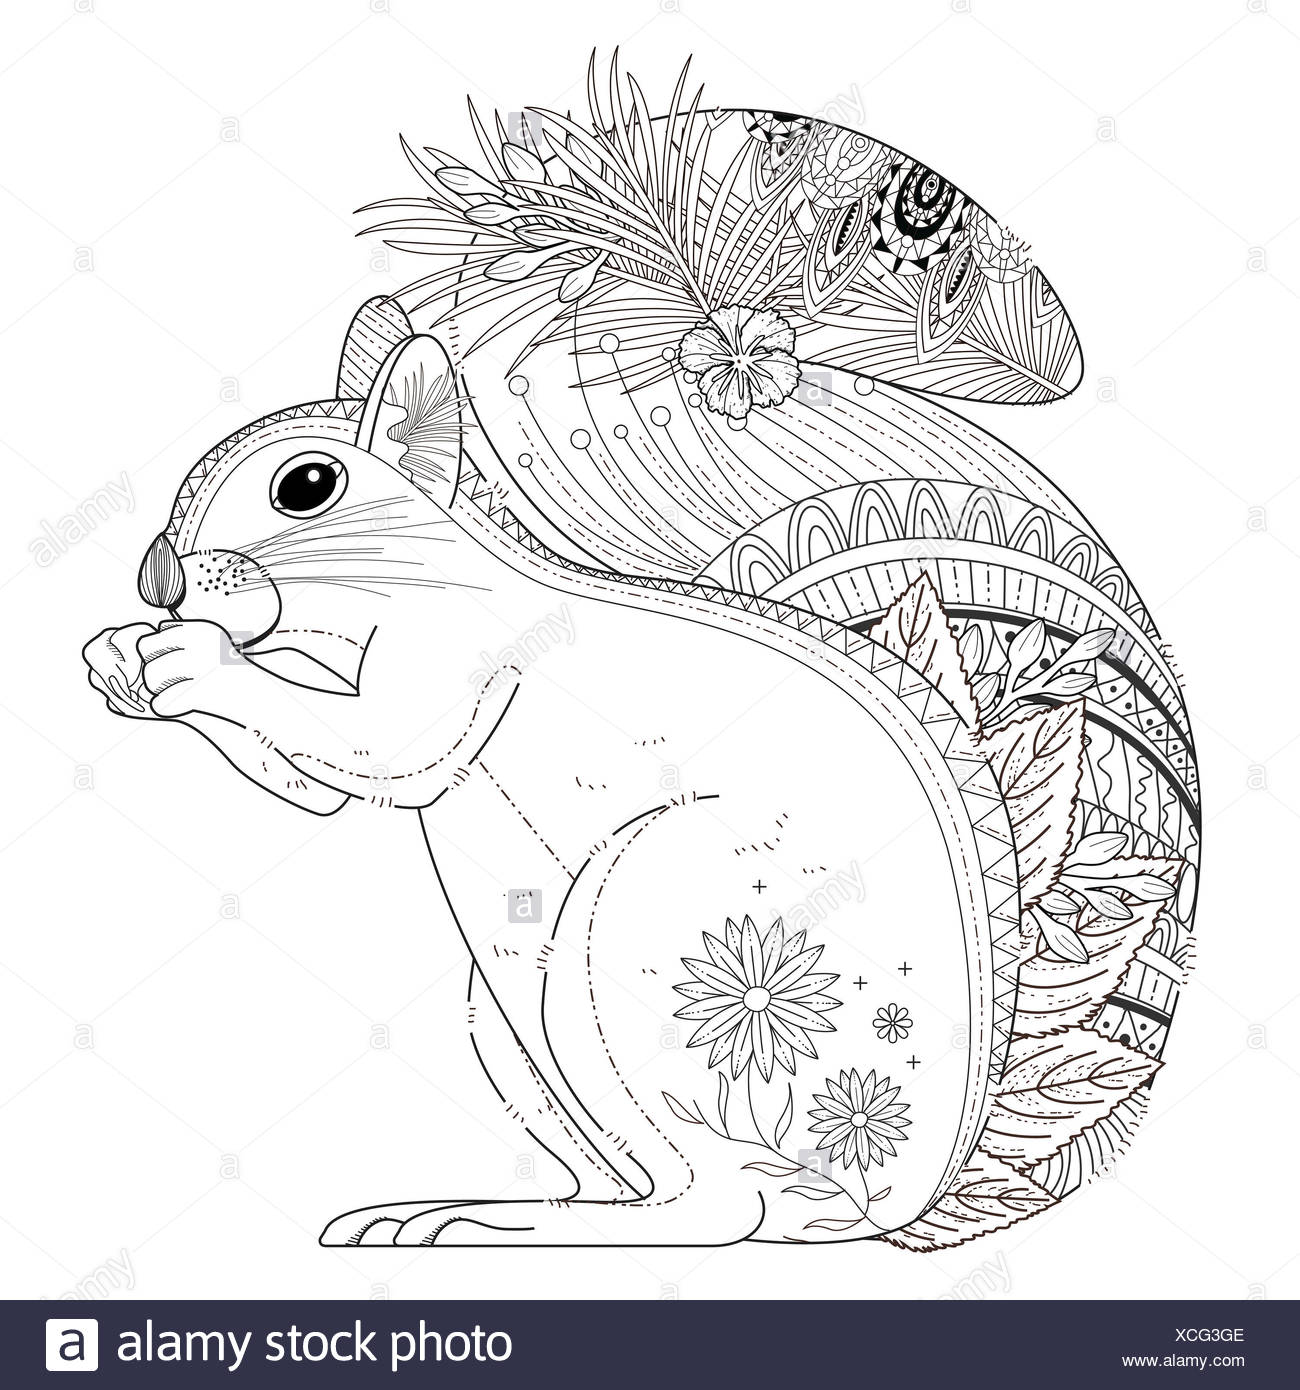 adorable squirrel coloring page in exquisite line Stock Photo ...